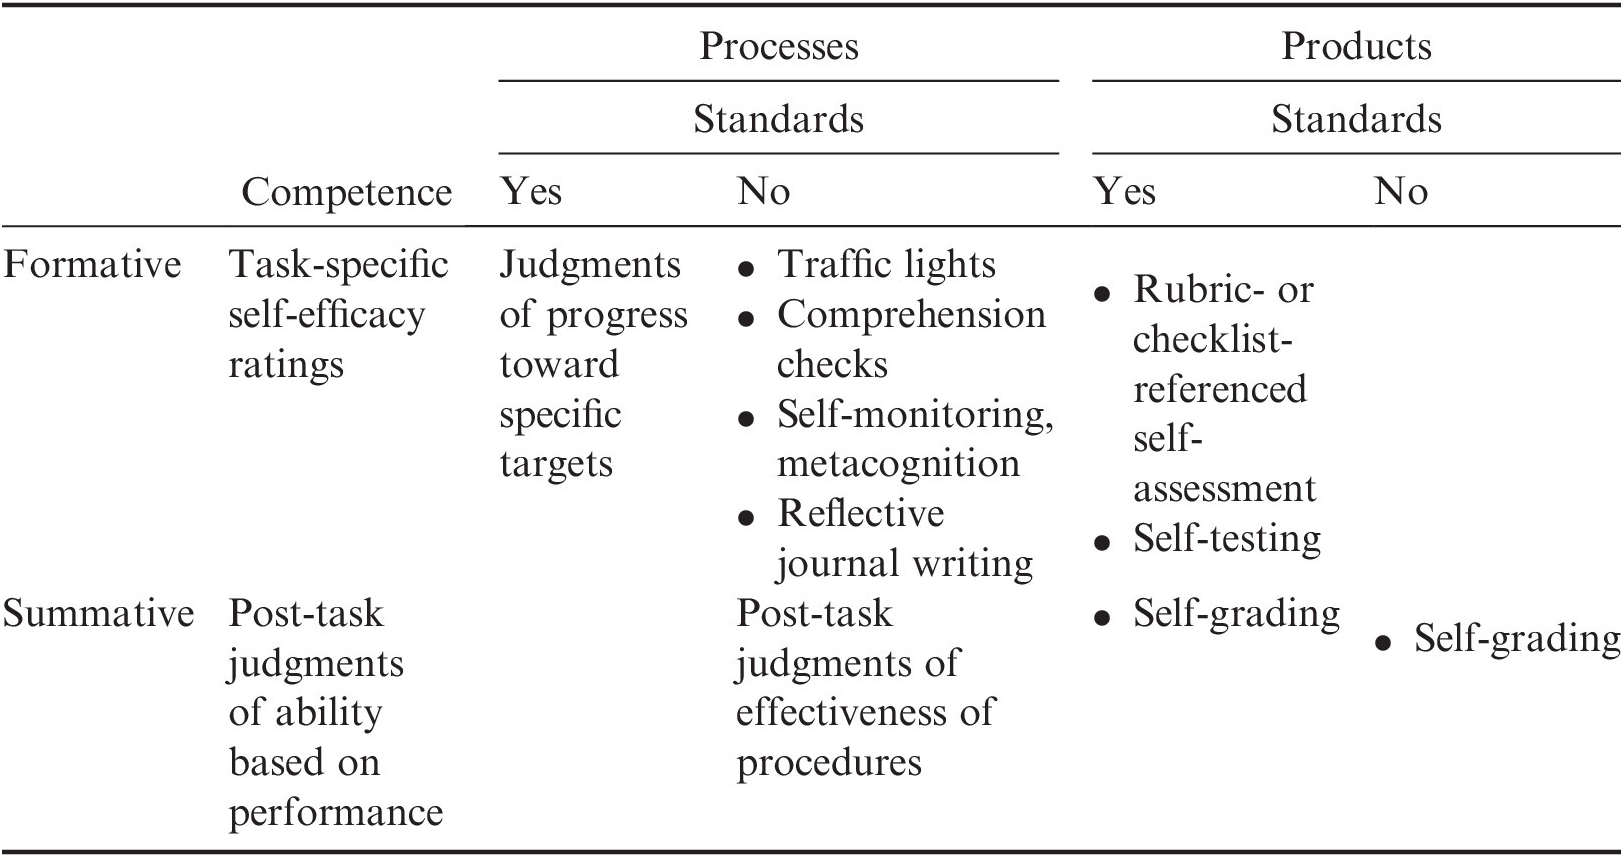 Contexts and Sources of Feedback (Part III) - The Cambridge